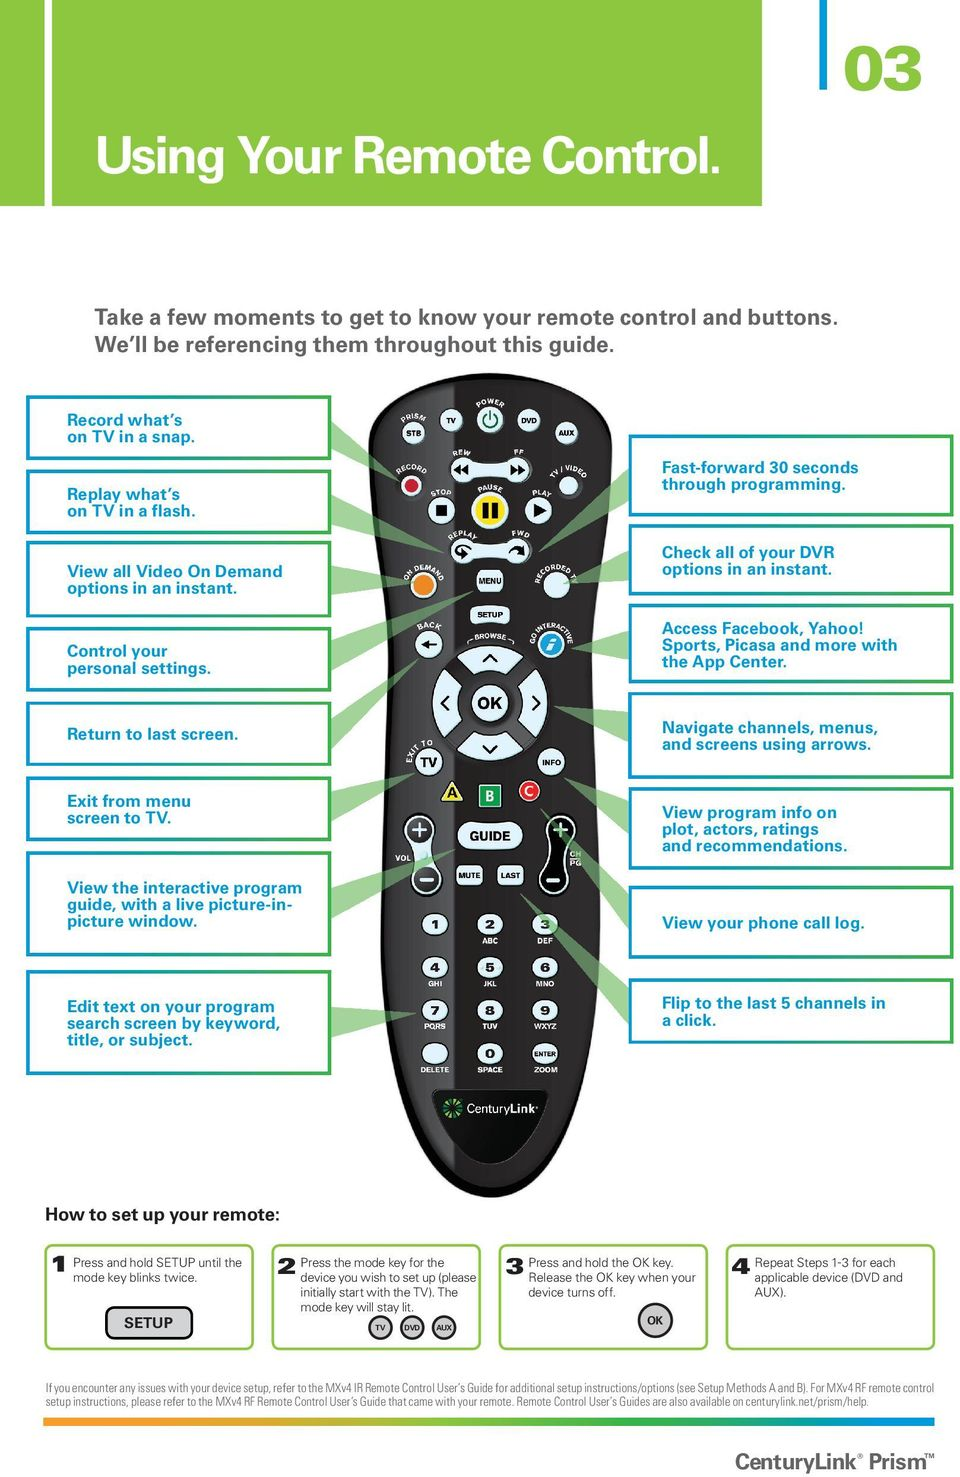 centurylink prism tv quick user guide please keep this handy for rh docplayer net Spanish TV Guide centurylink tv channel list